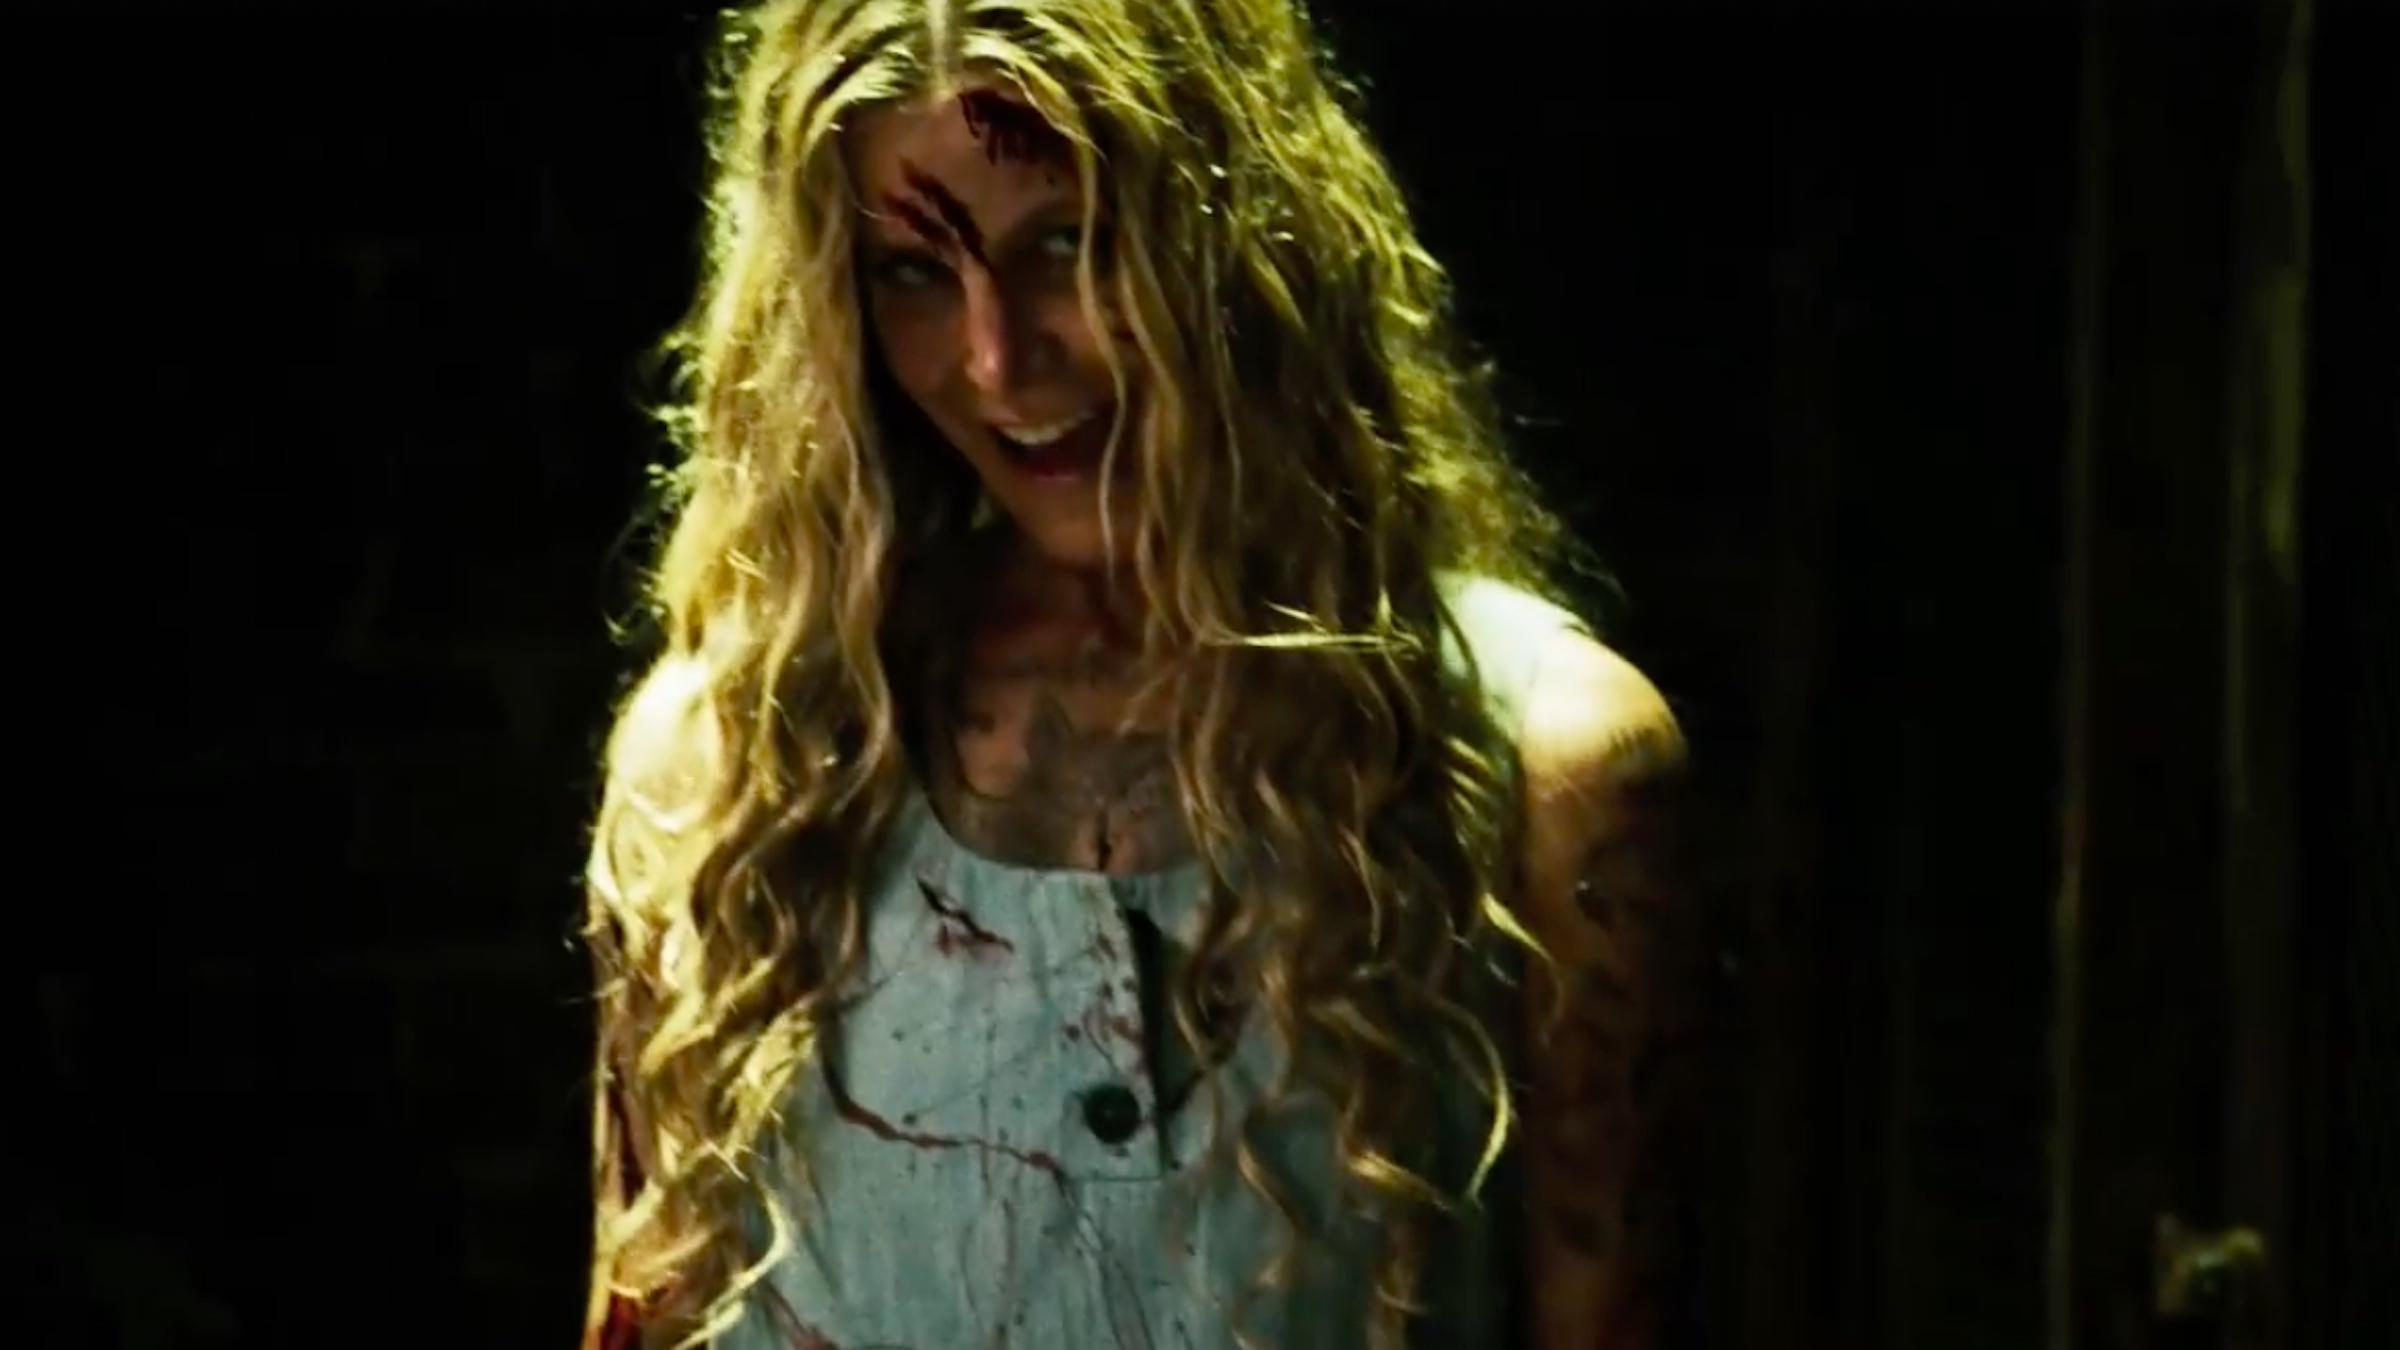 Rob Zombie's New Movie '3 From Hell' Looks Downright Disturbing